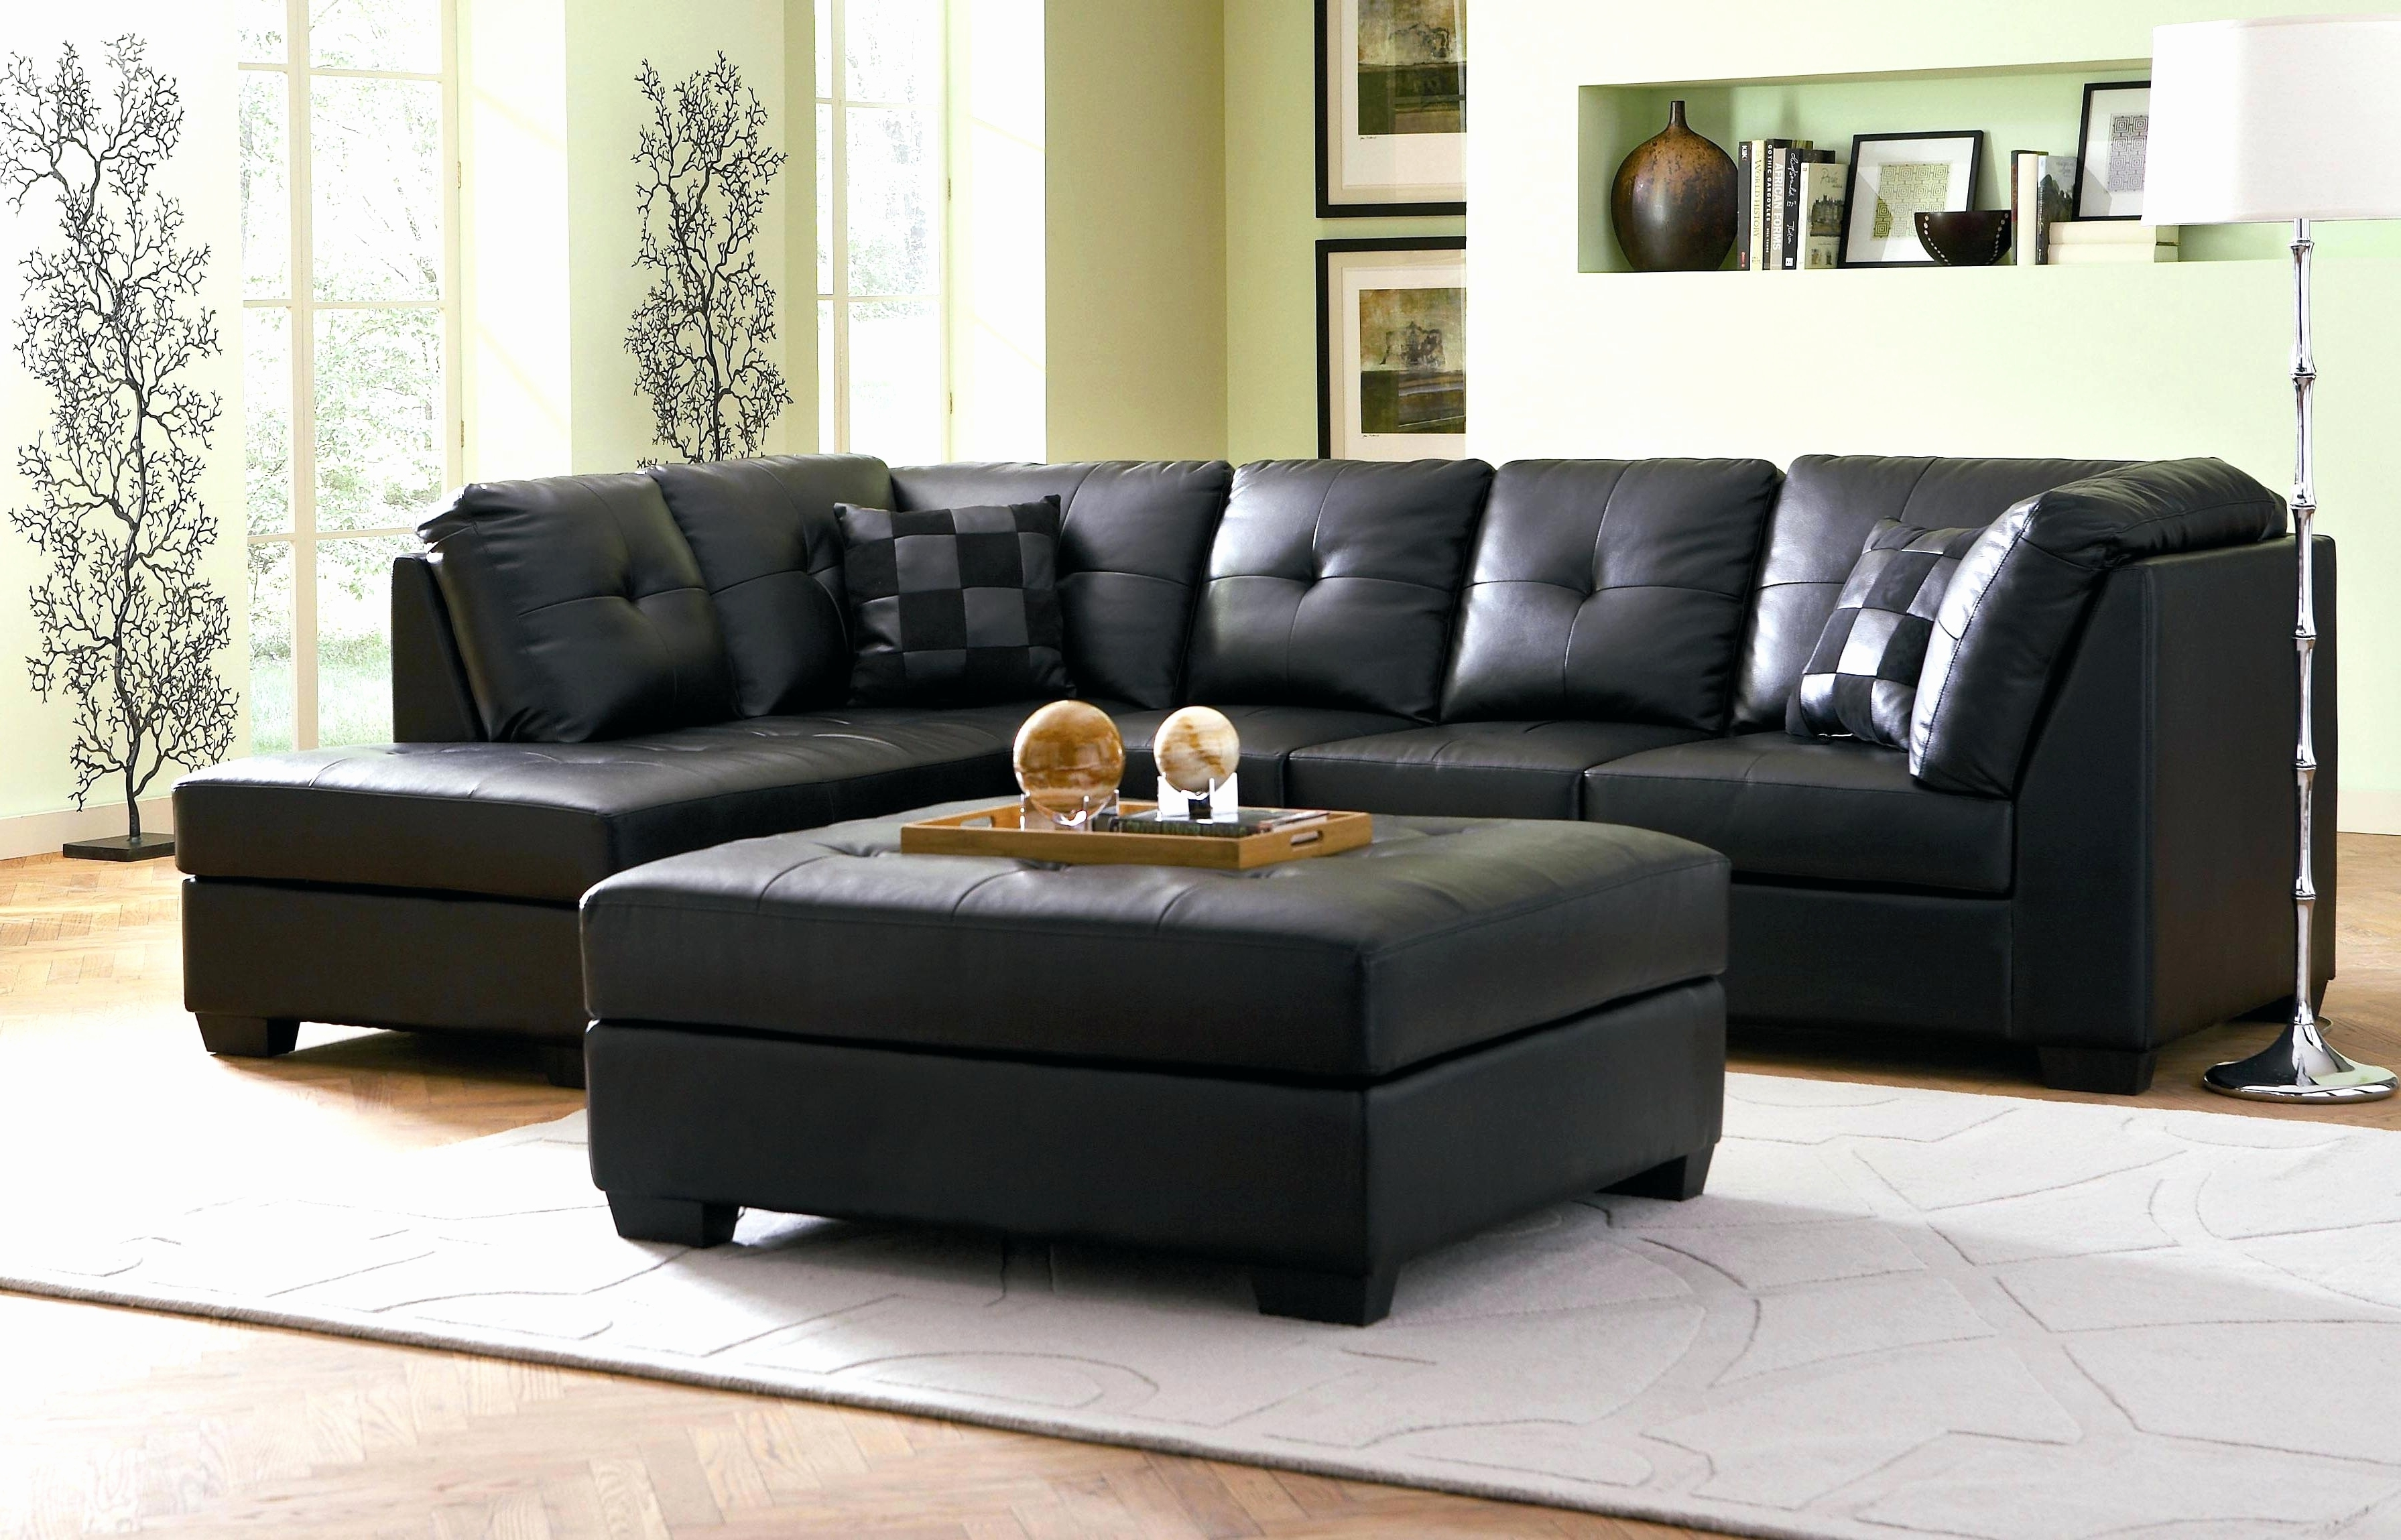 Most Recently Released Luxury Reclining Sectional Sofas For Small Spaces 2018 – Couches With Small Sectional Sofas For Small Spaces (View 6 of 20)